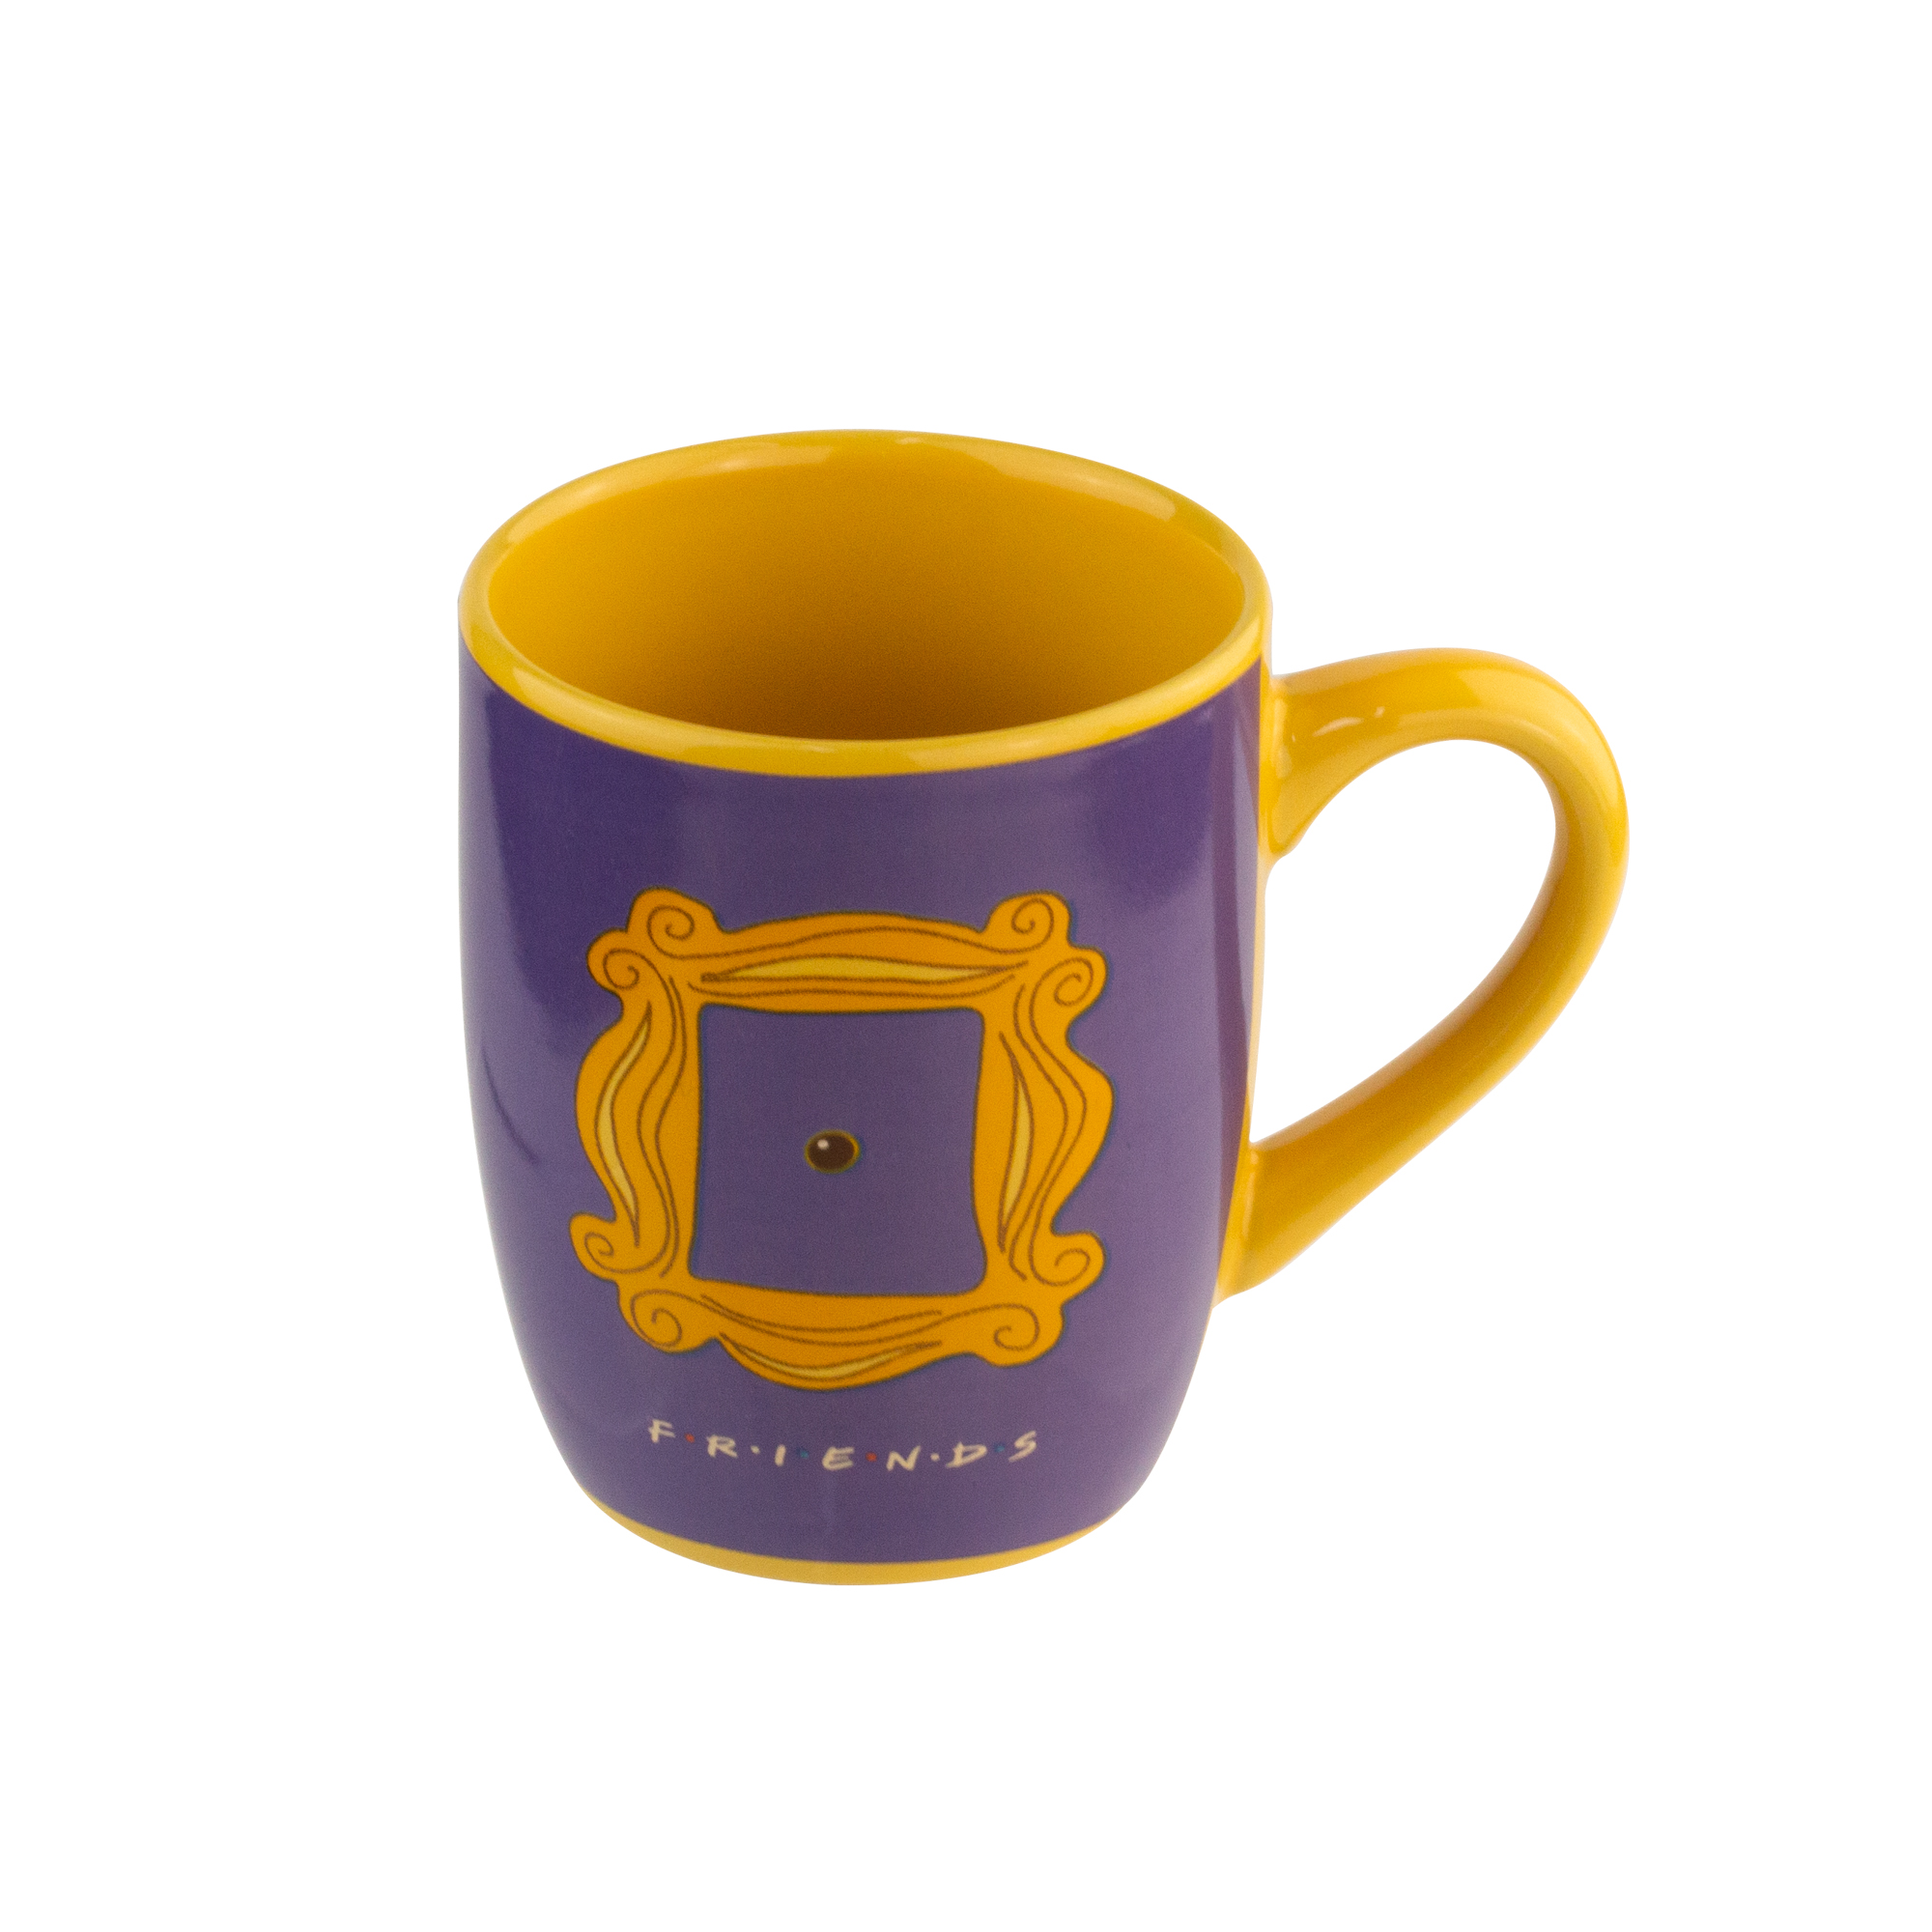 CANECA PORCELANA ELEGANT WB FRIENDS CLASSIC DOOR ROXO 8,2x6,2x10,2 cm - 350ml